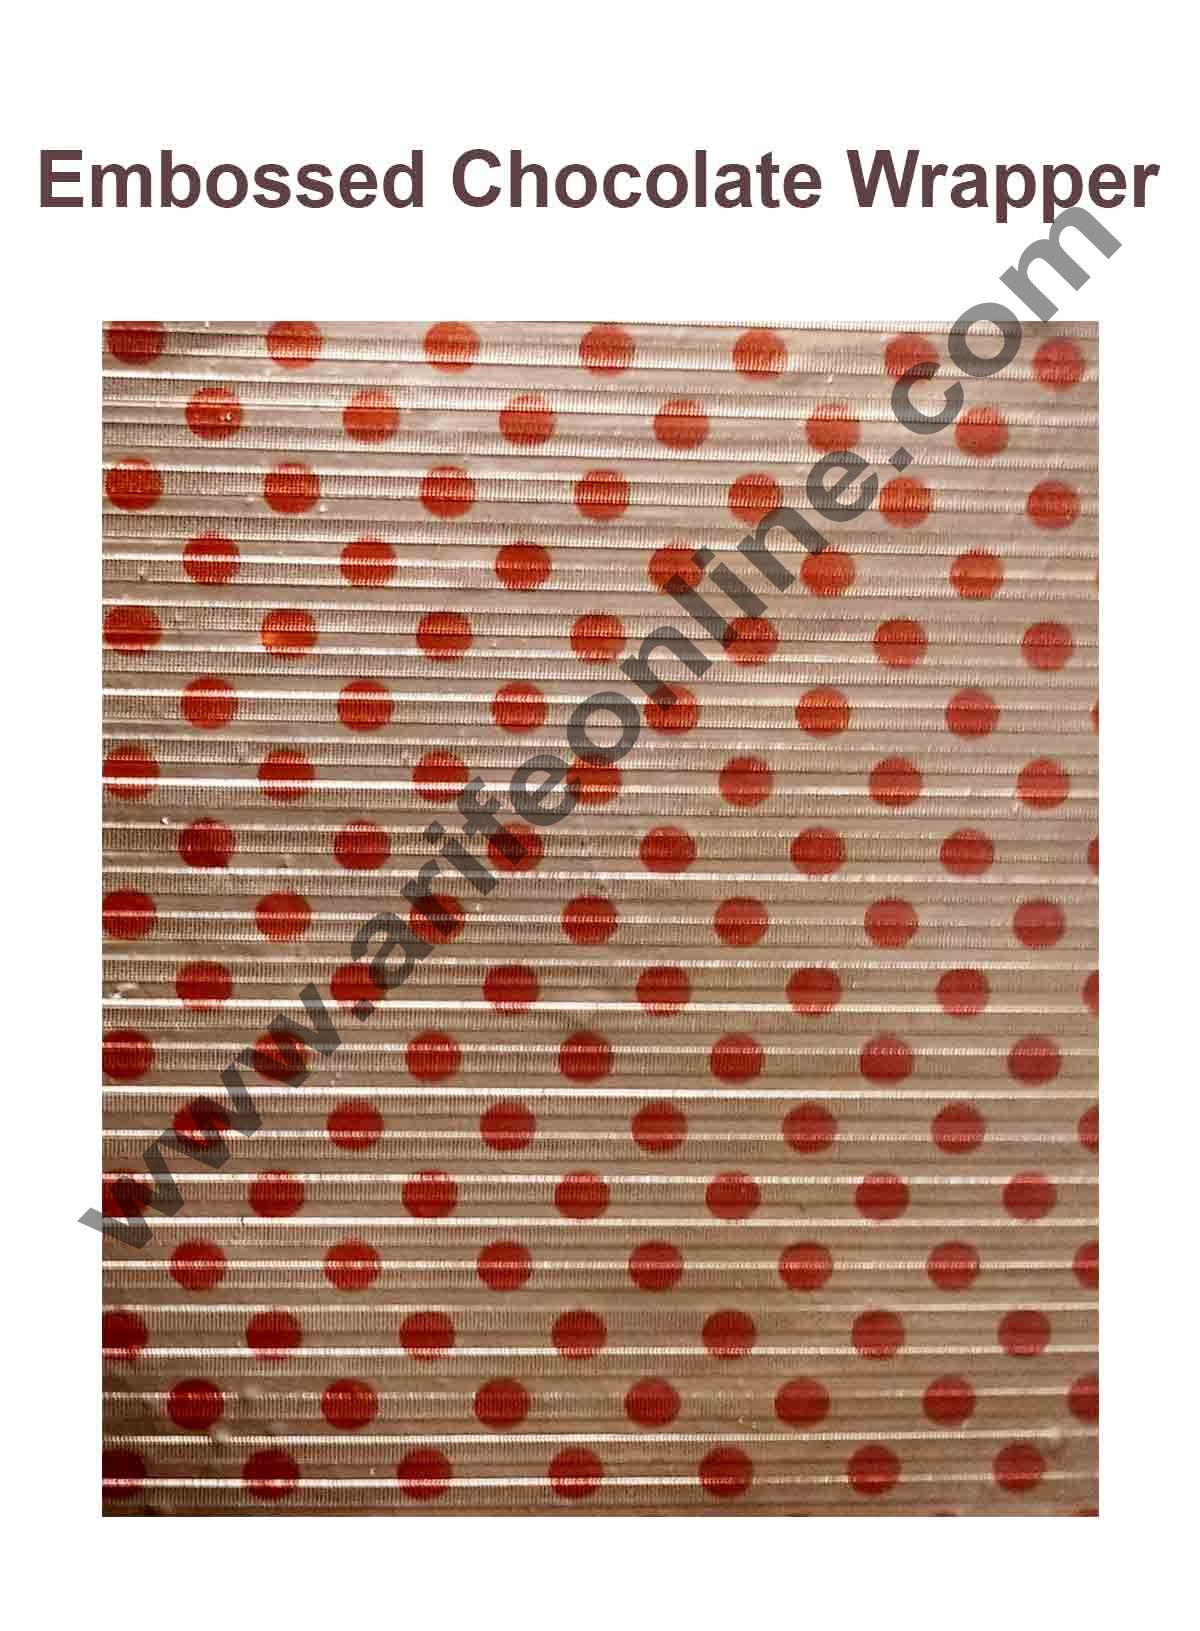 Cake Decor Chocolate Wrappering Foil, Embossed Chocolate Wrapper, 200 Sheets - 10in x 7in - Dotted Light Red and Red